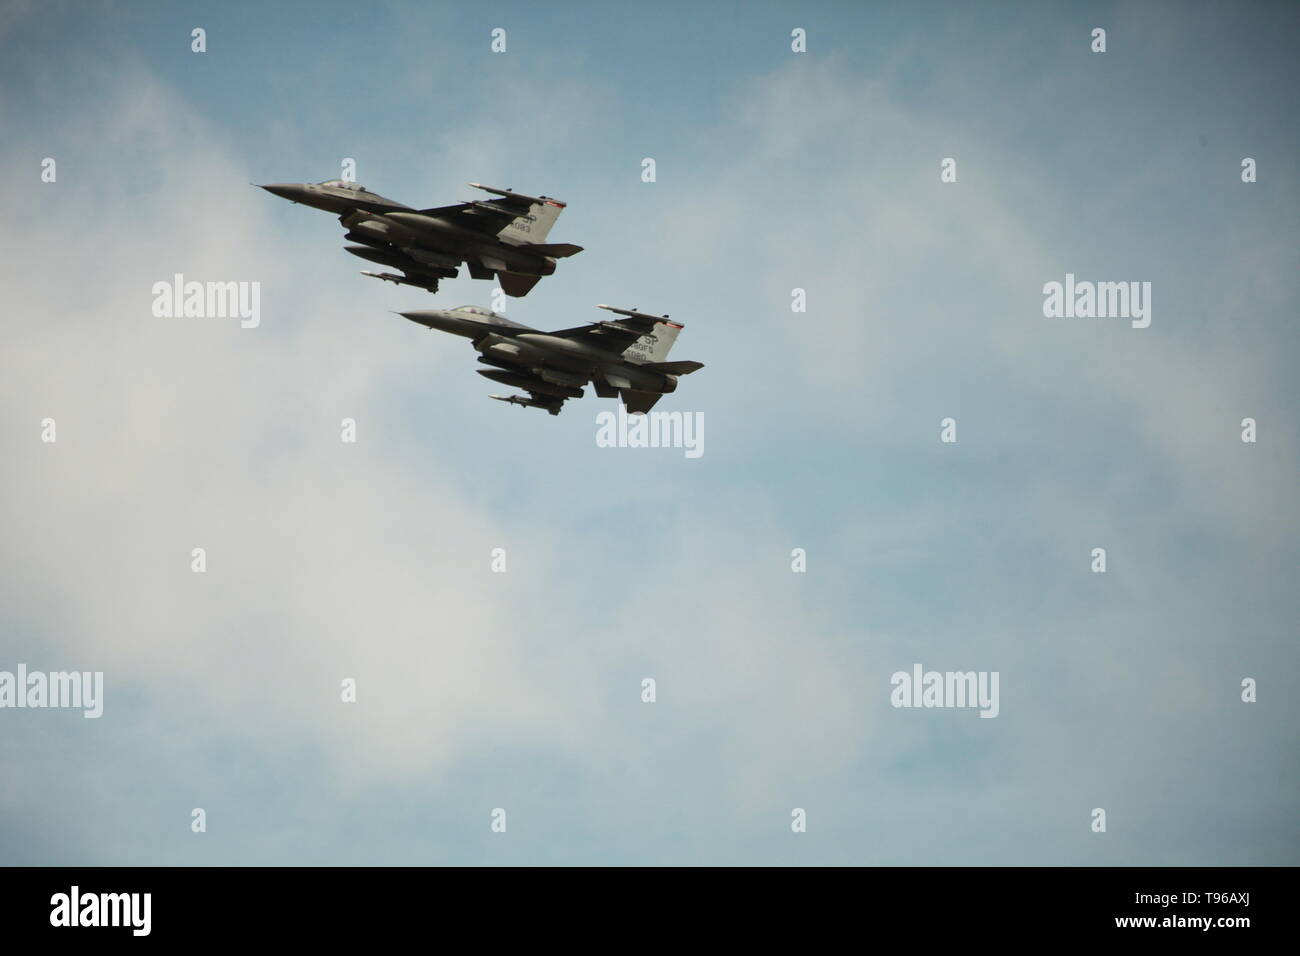 General Dynamics F-16 Fighting Falcon - Stock Image